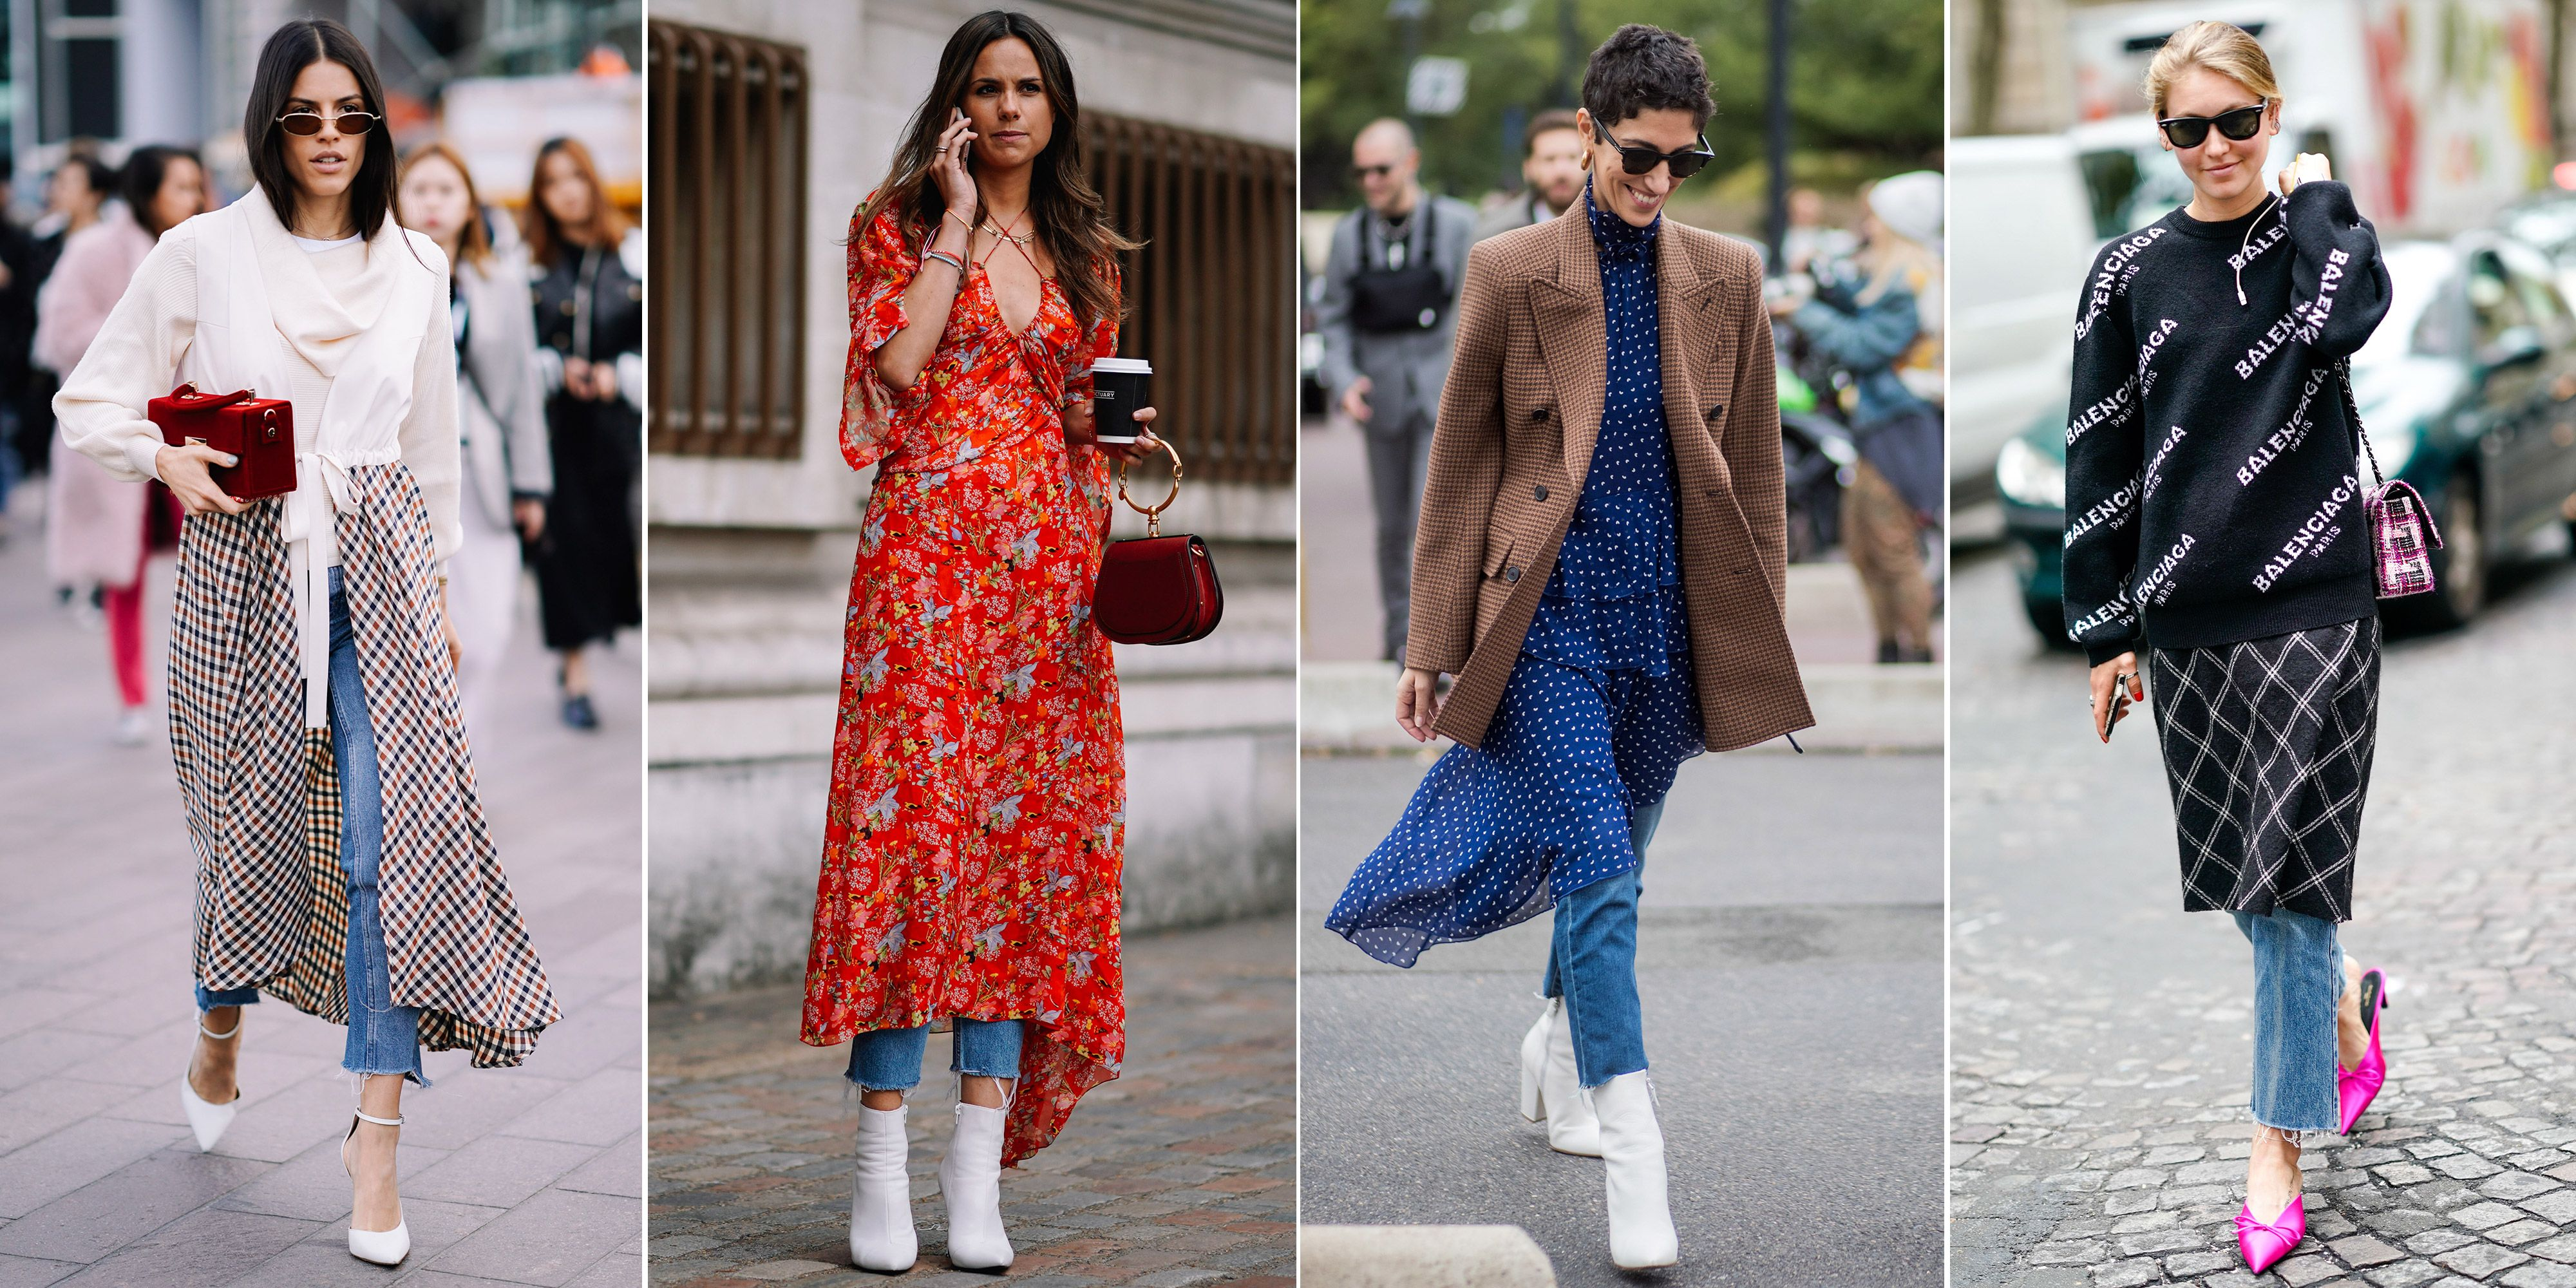 How to wear dresses over jeans – Styling advice for ...